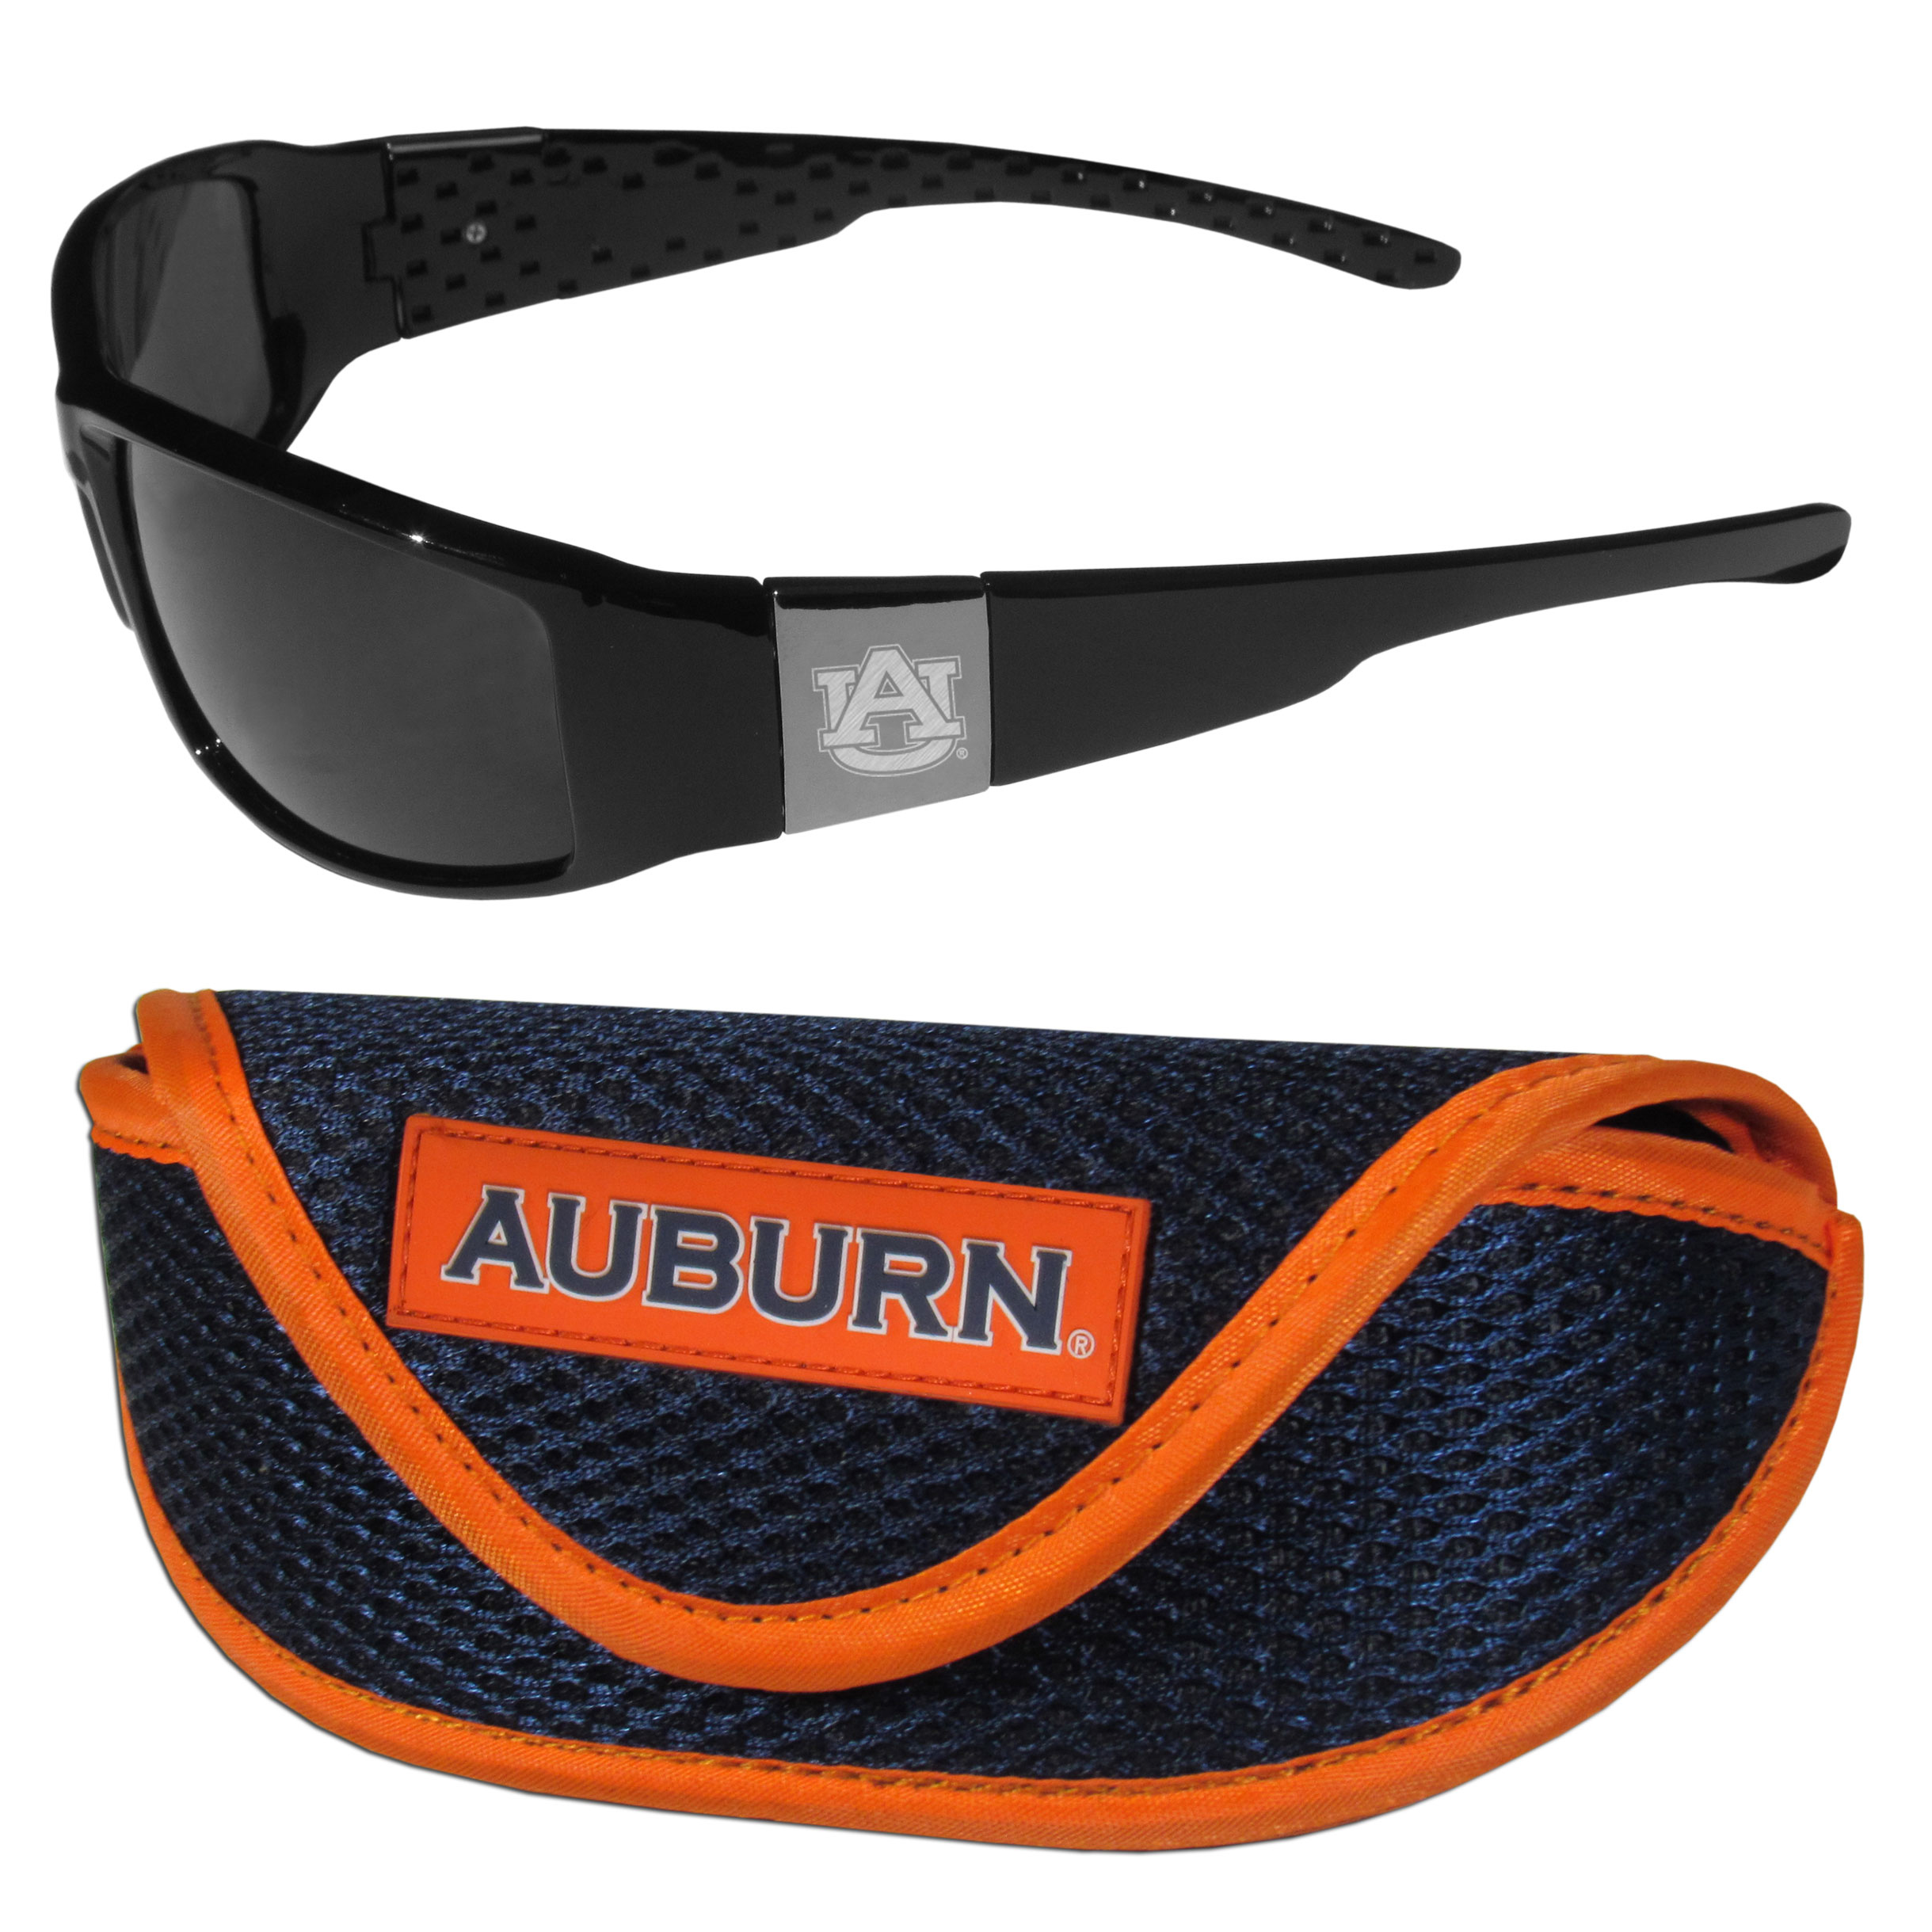 Auburn Tigers Chrome Wrap Sunglasses and Sport Carrying Case - These designer inspired frames have a sleek look in all black with high-polish chrome Auburn Tigers shields on each arm with an etched logo. The shades are perfect any outdoor activity like; golfing, driving, hiking, fishing or cheering on the team at a tailgating event or an at home game day BBQ with a lens rating of 100% UVA/UVB for maximum UV protection. The high-quality frames are as durable as they are fashionable and with their classic look they are perfect fan accessory that can be worn everyday for every occasion. The shades come with a zippered hard shell case to keep your sunglasses safe.